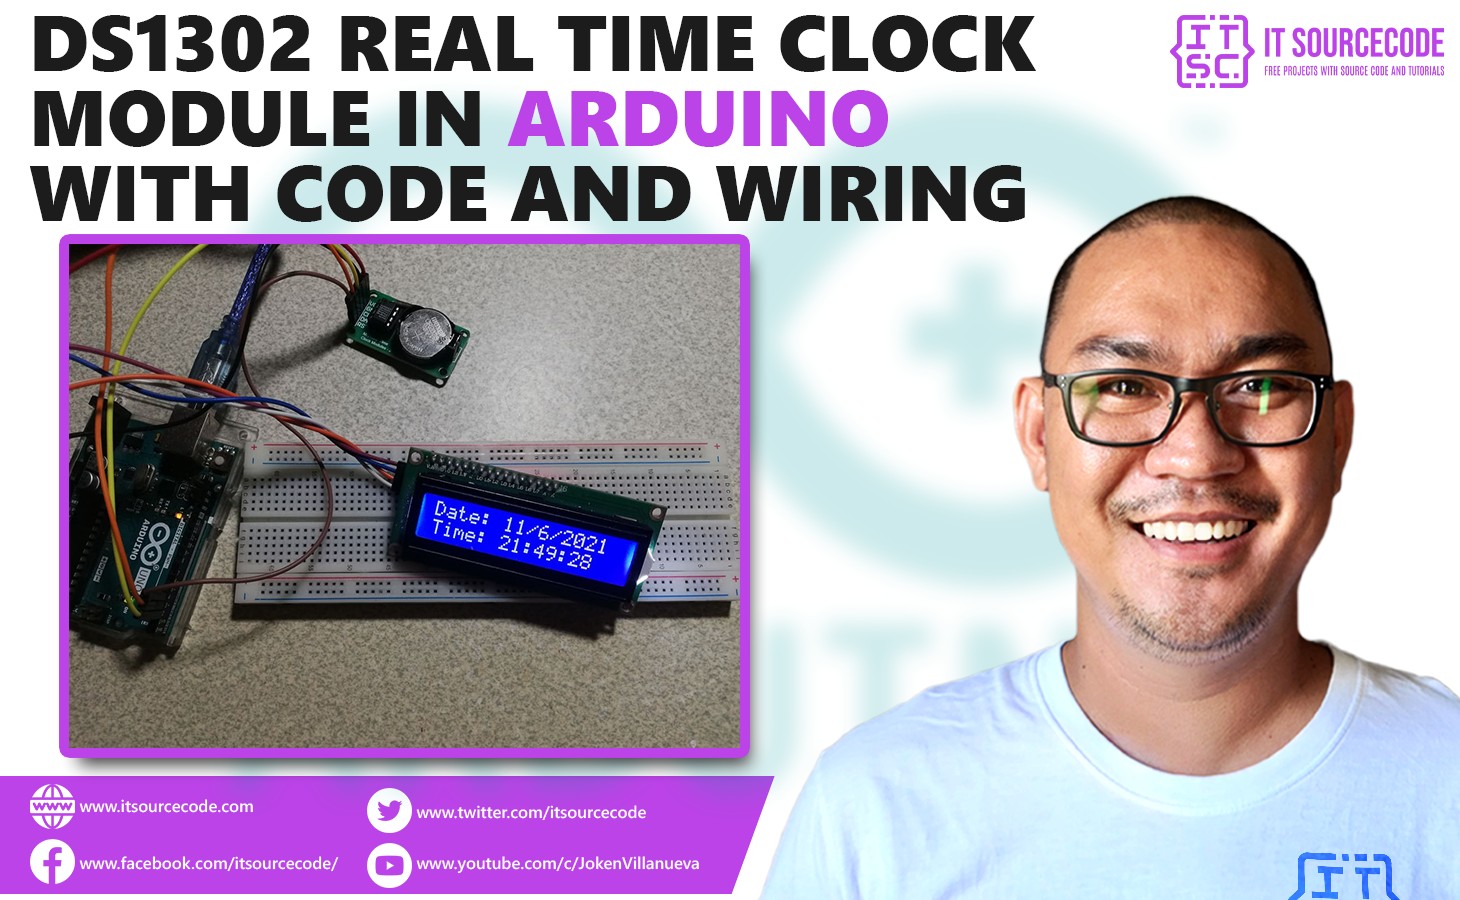 DS1302 Real Time Clock Module in Arduino with Code and Wiring